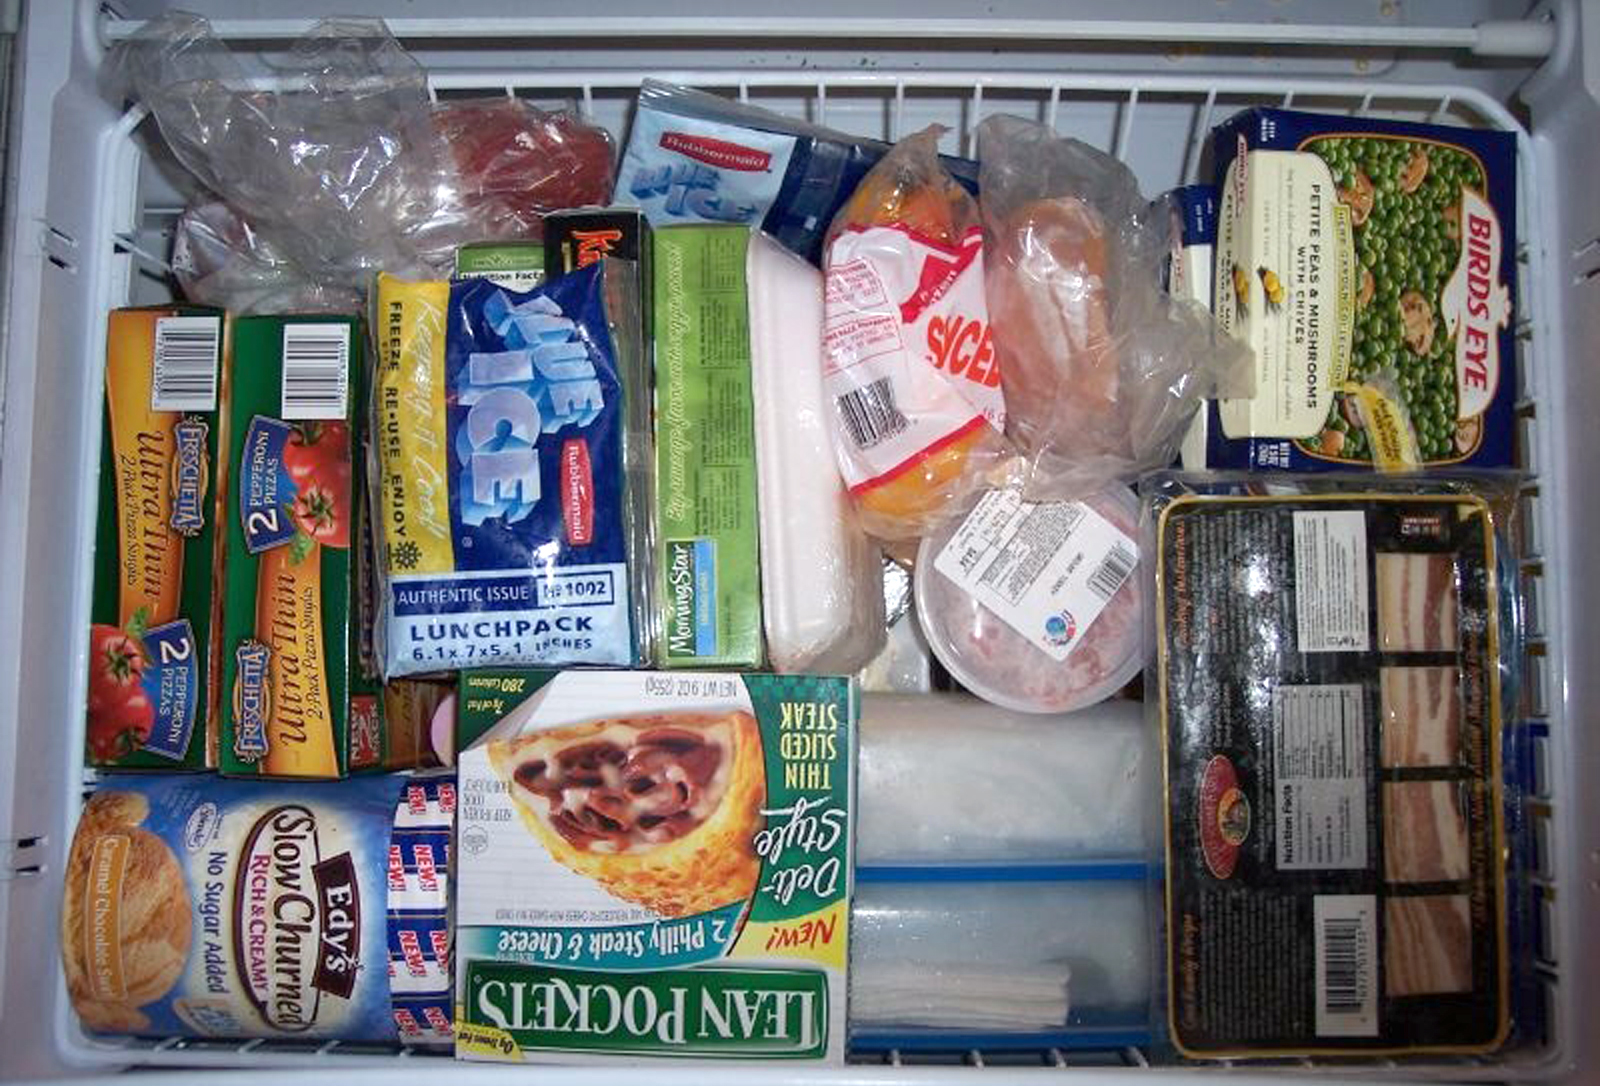 Frozen Food Items You Should Stop Buying (And How to Make Alternatives)